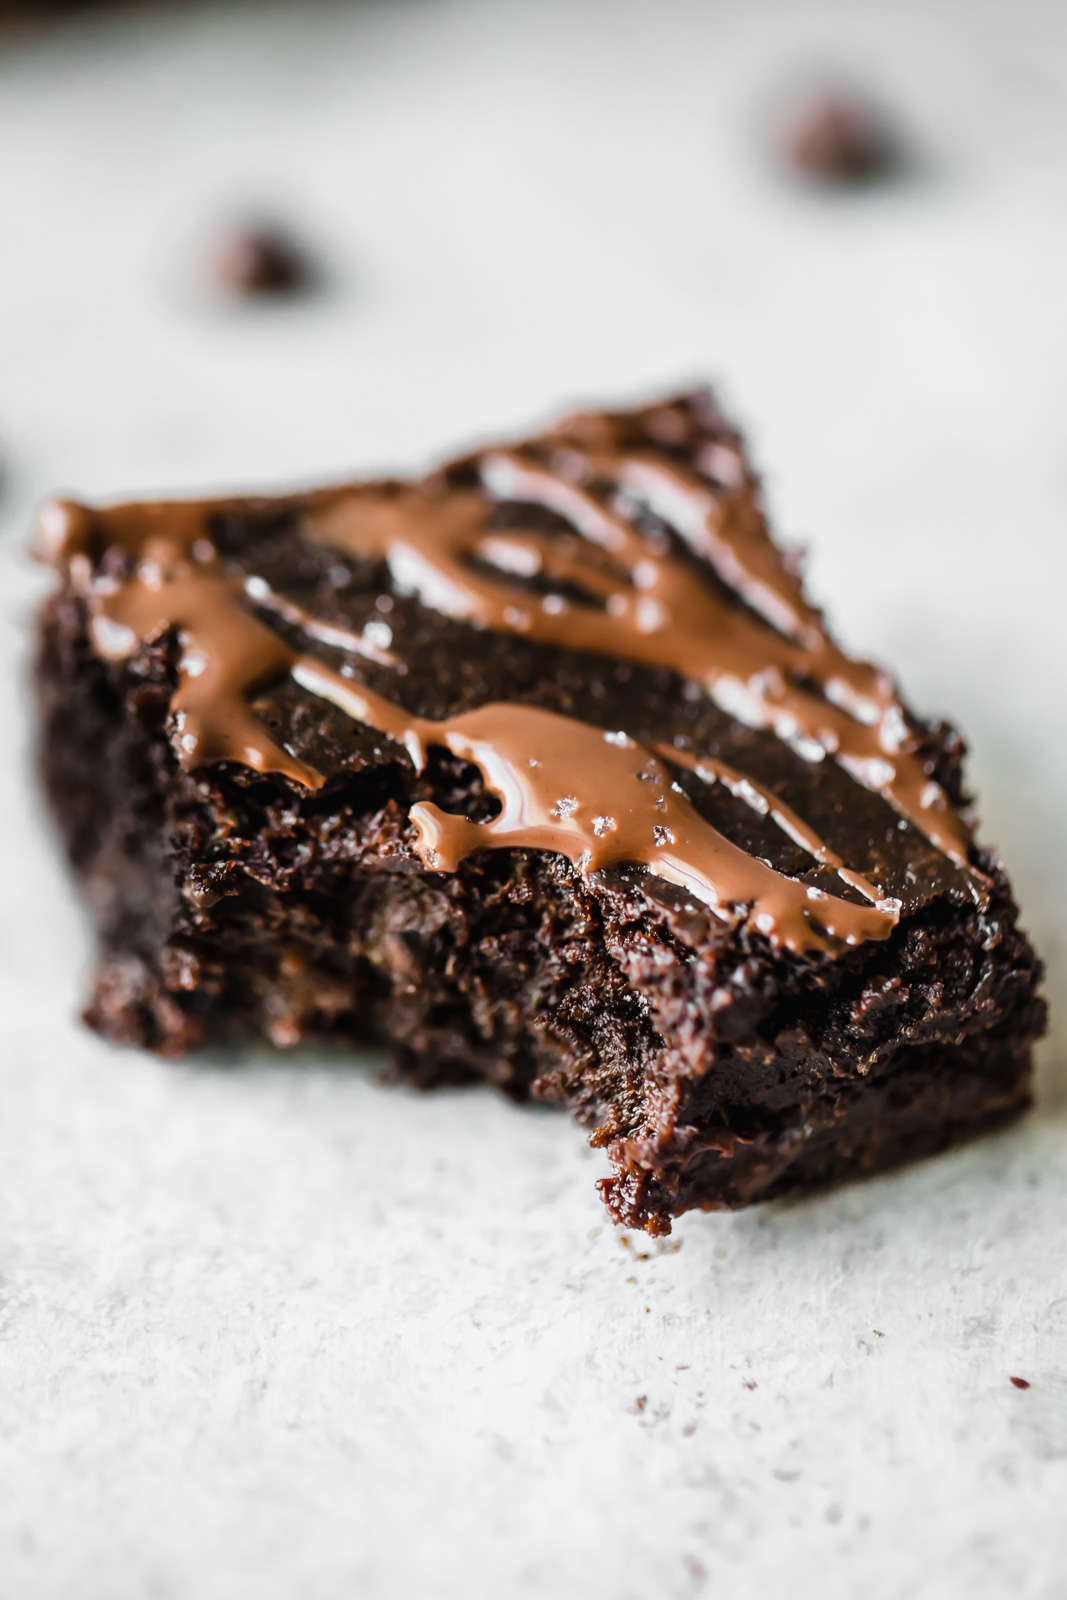 The top 25 recipes from Ambitious Kitchen in 2018: zucchini brownies